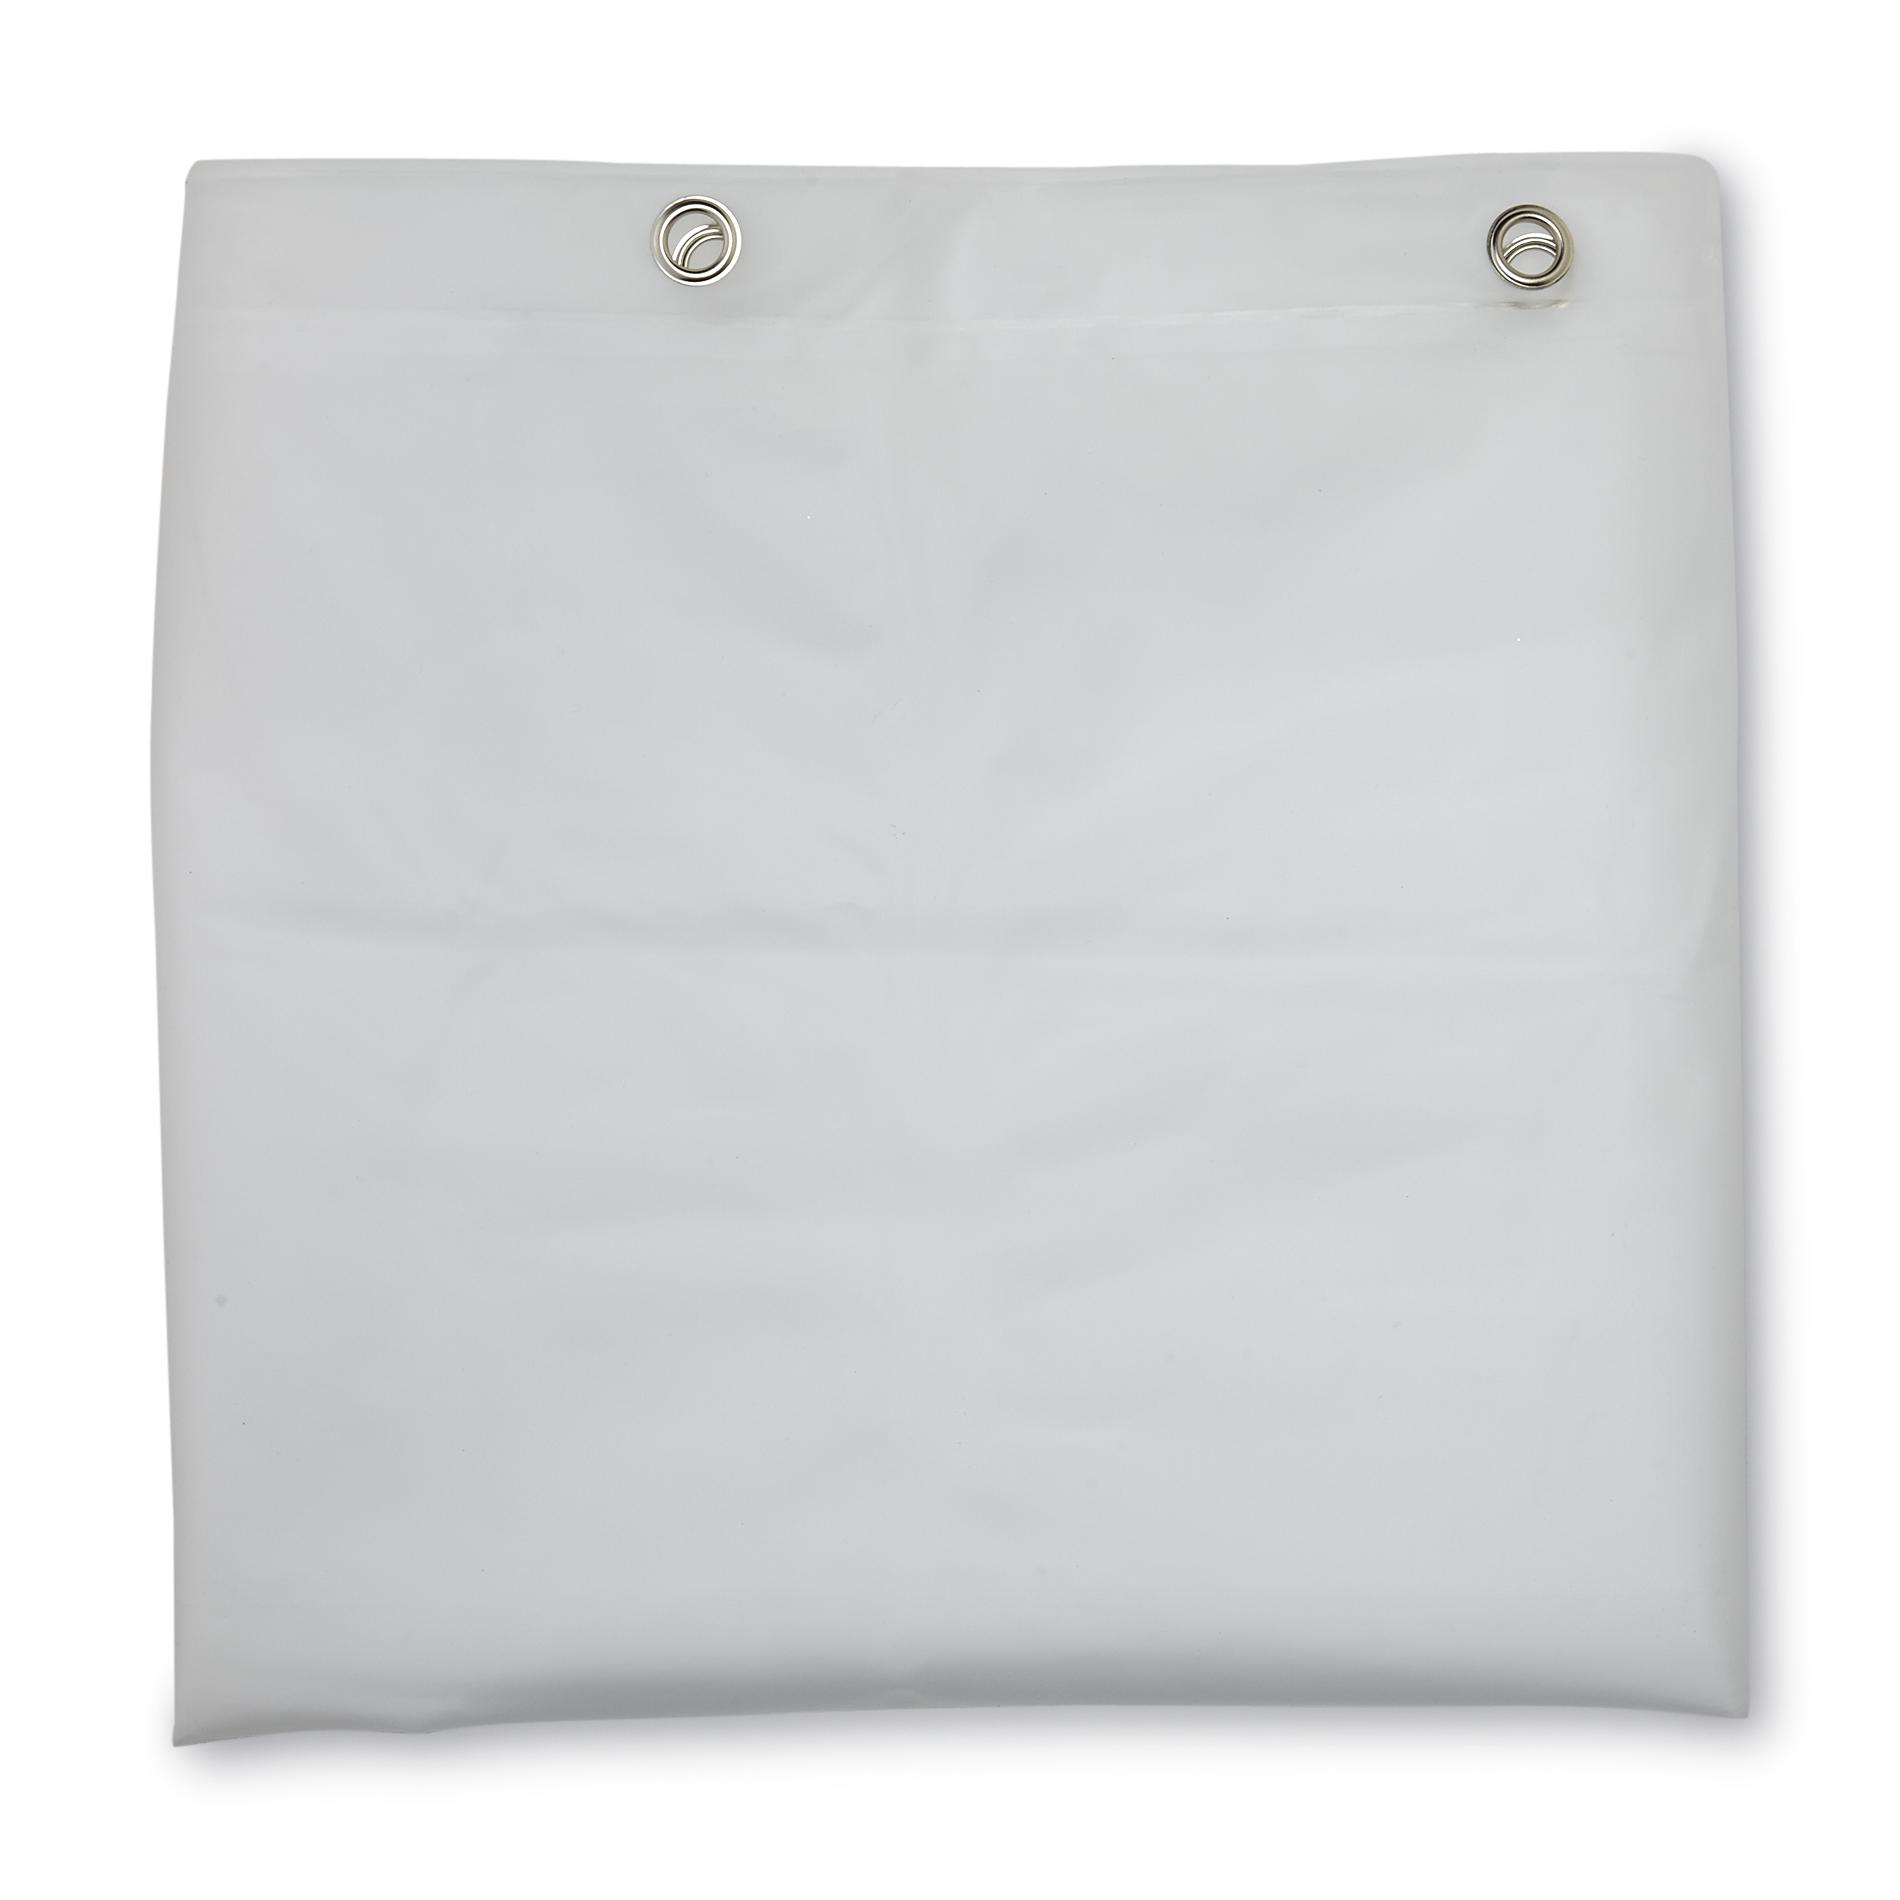 Shower Curtain Liner | Peva Shower Curtain Liner | Washable Shower Curtain Liner